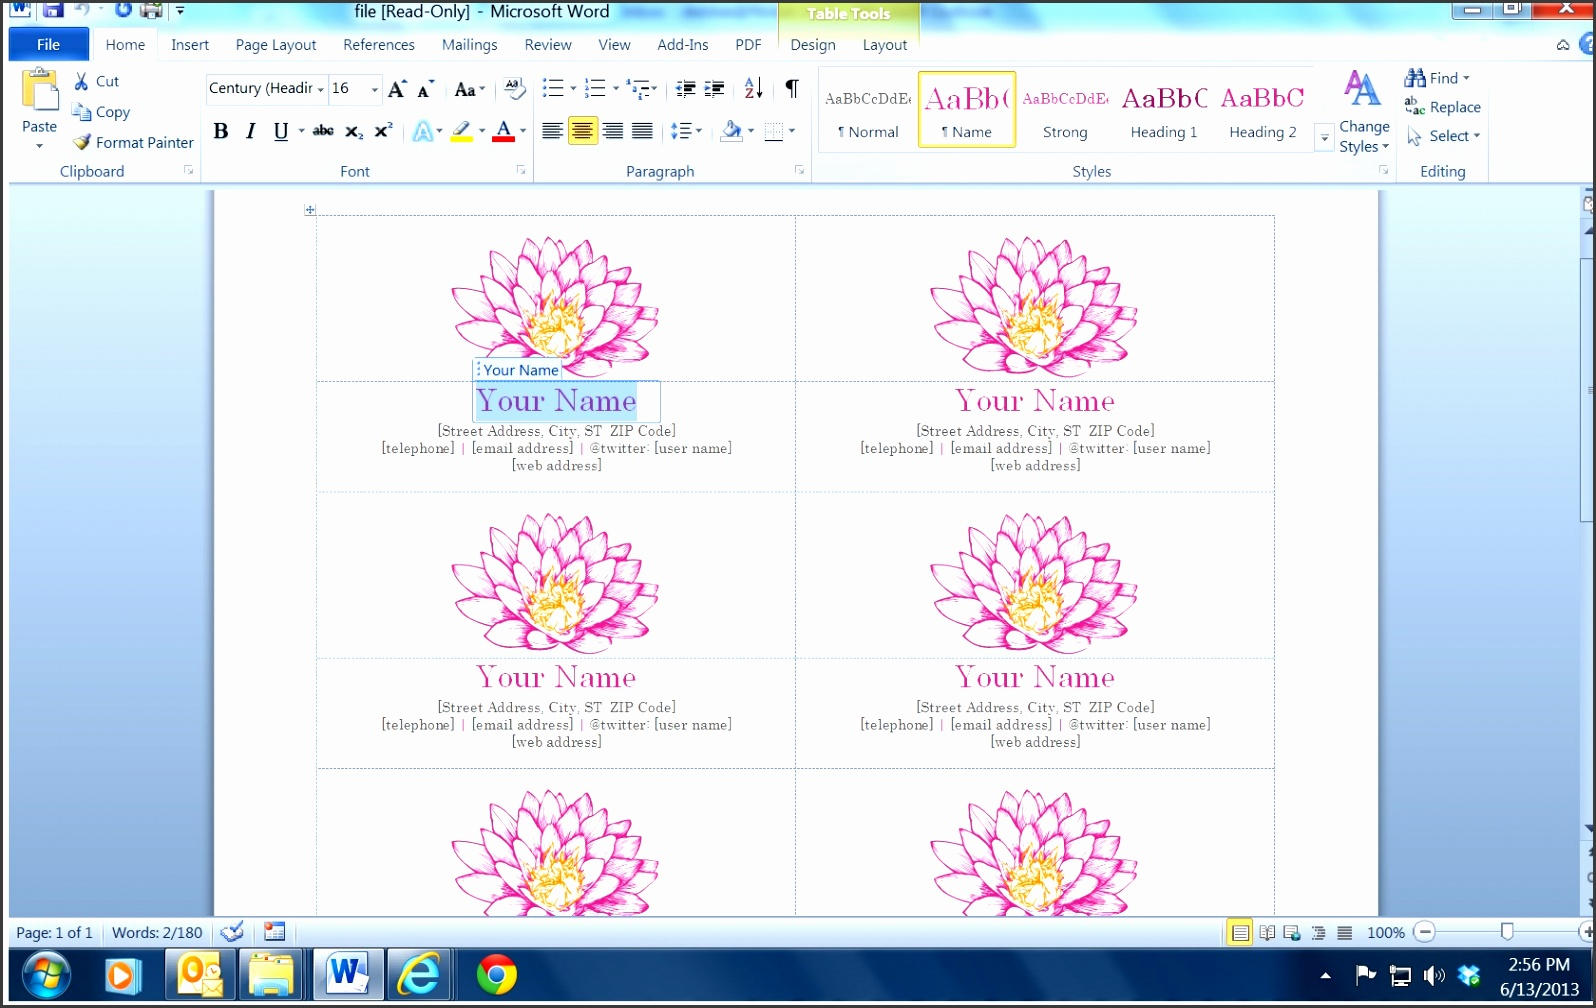 awesome collection of microsoft office templates business cards enom warb on how to find business card templates in microsoft word 2010 of how to find business card templates in microsoft word 2010